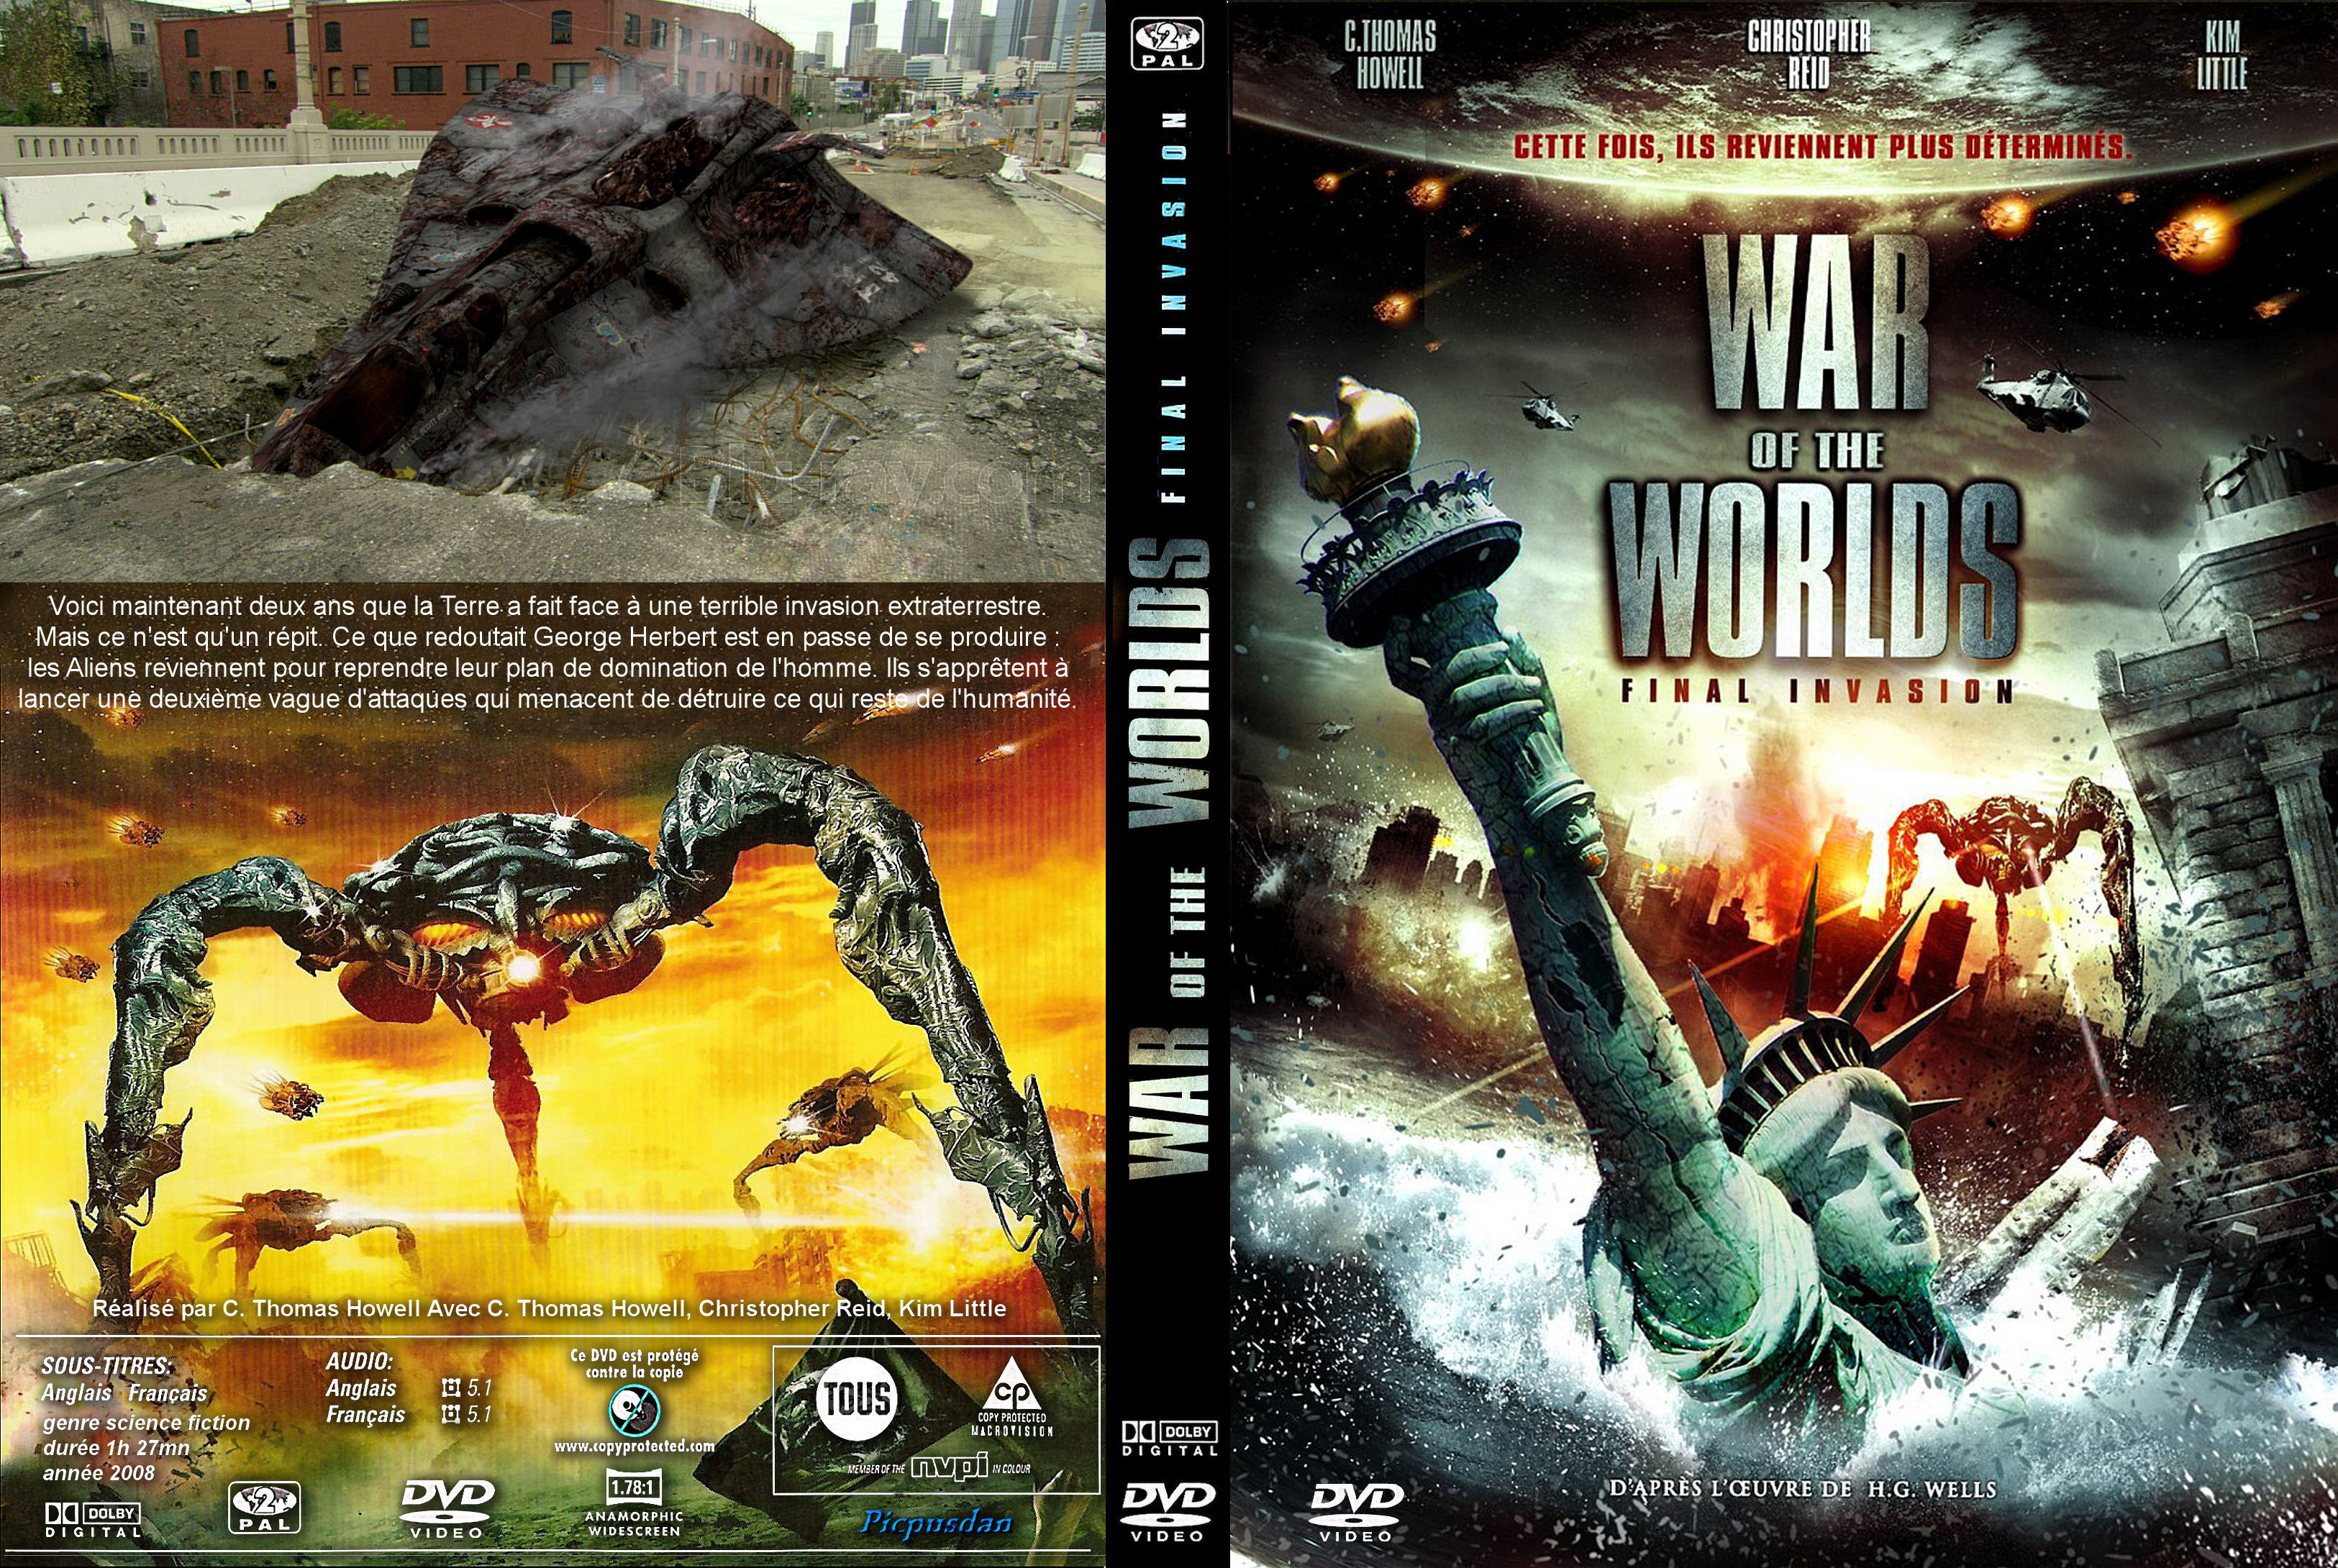 War Of The Worlds Final Invasion